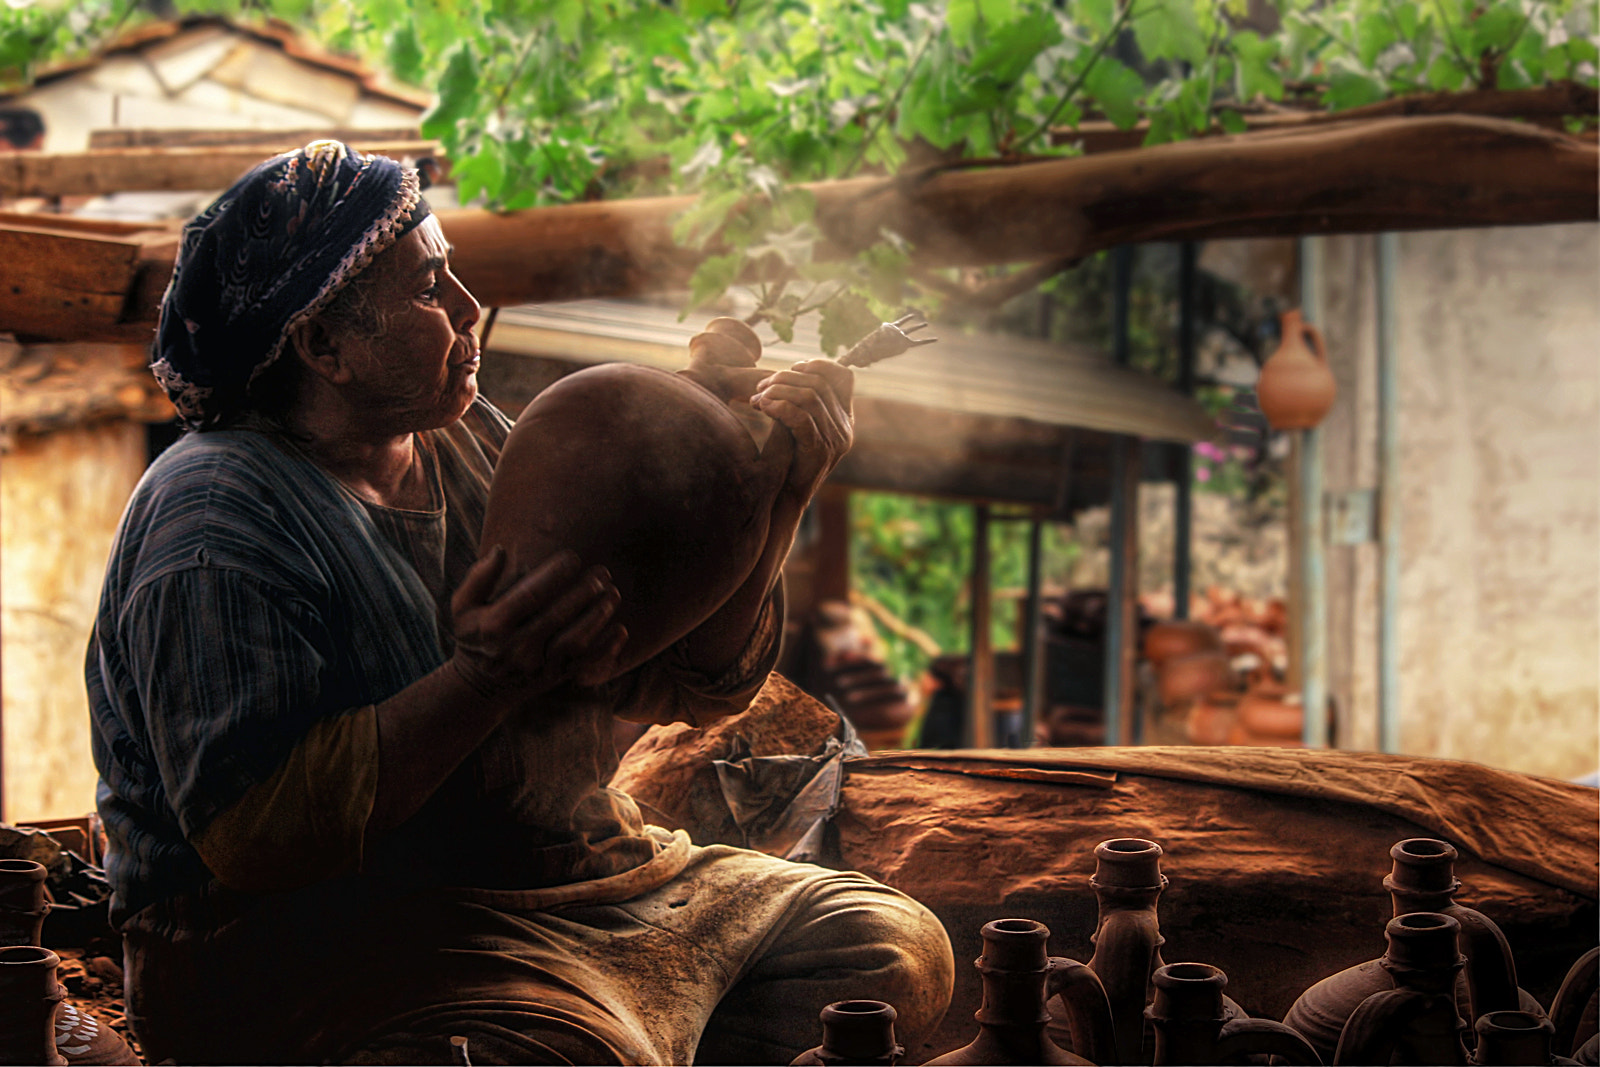 Photograph potter woman by Emine Başa on 500px